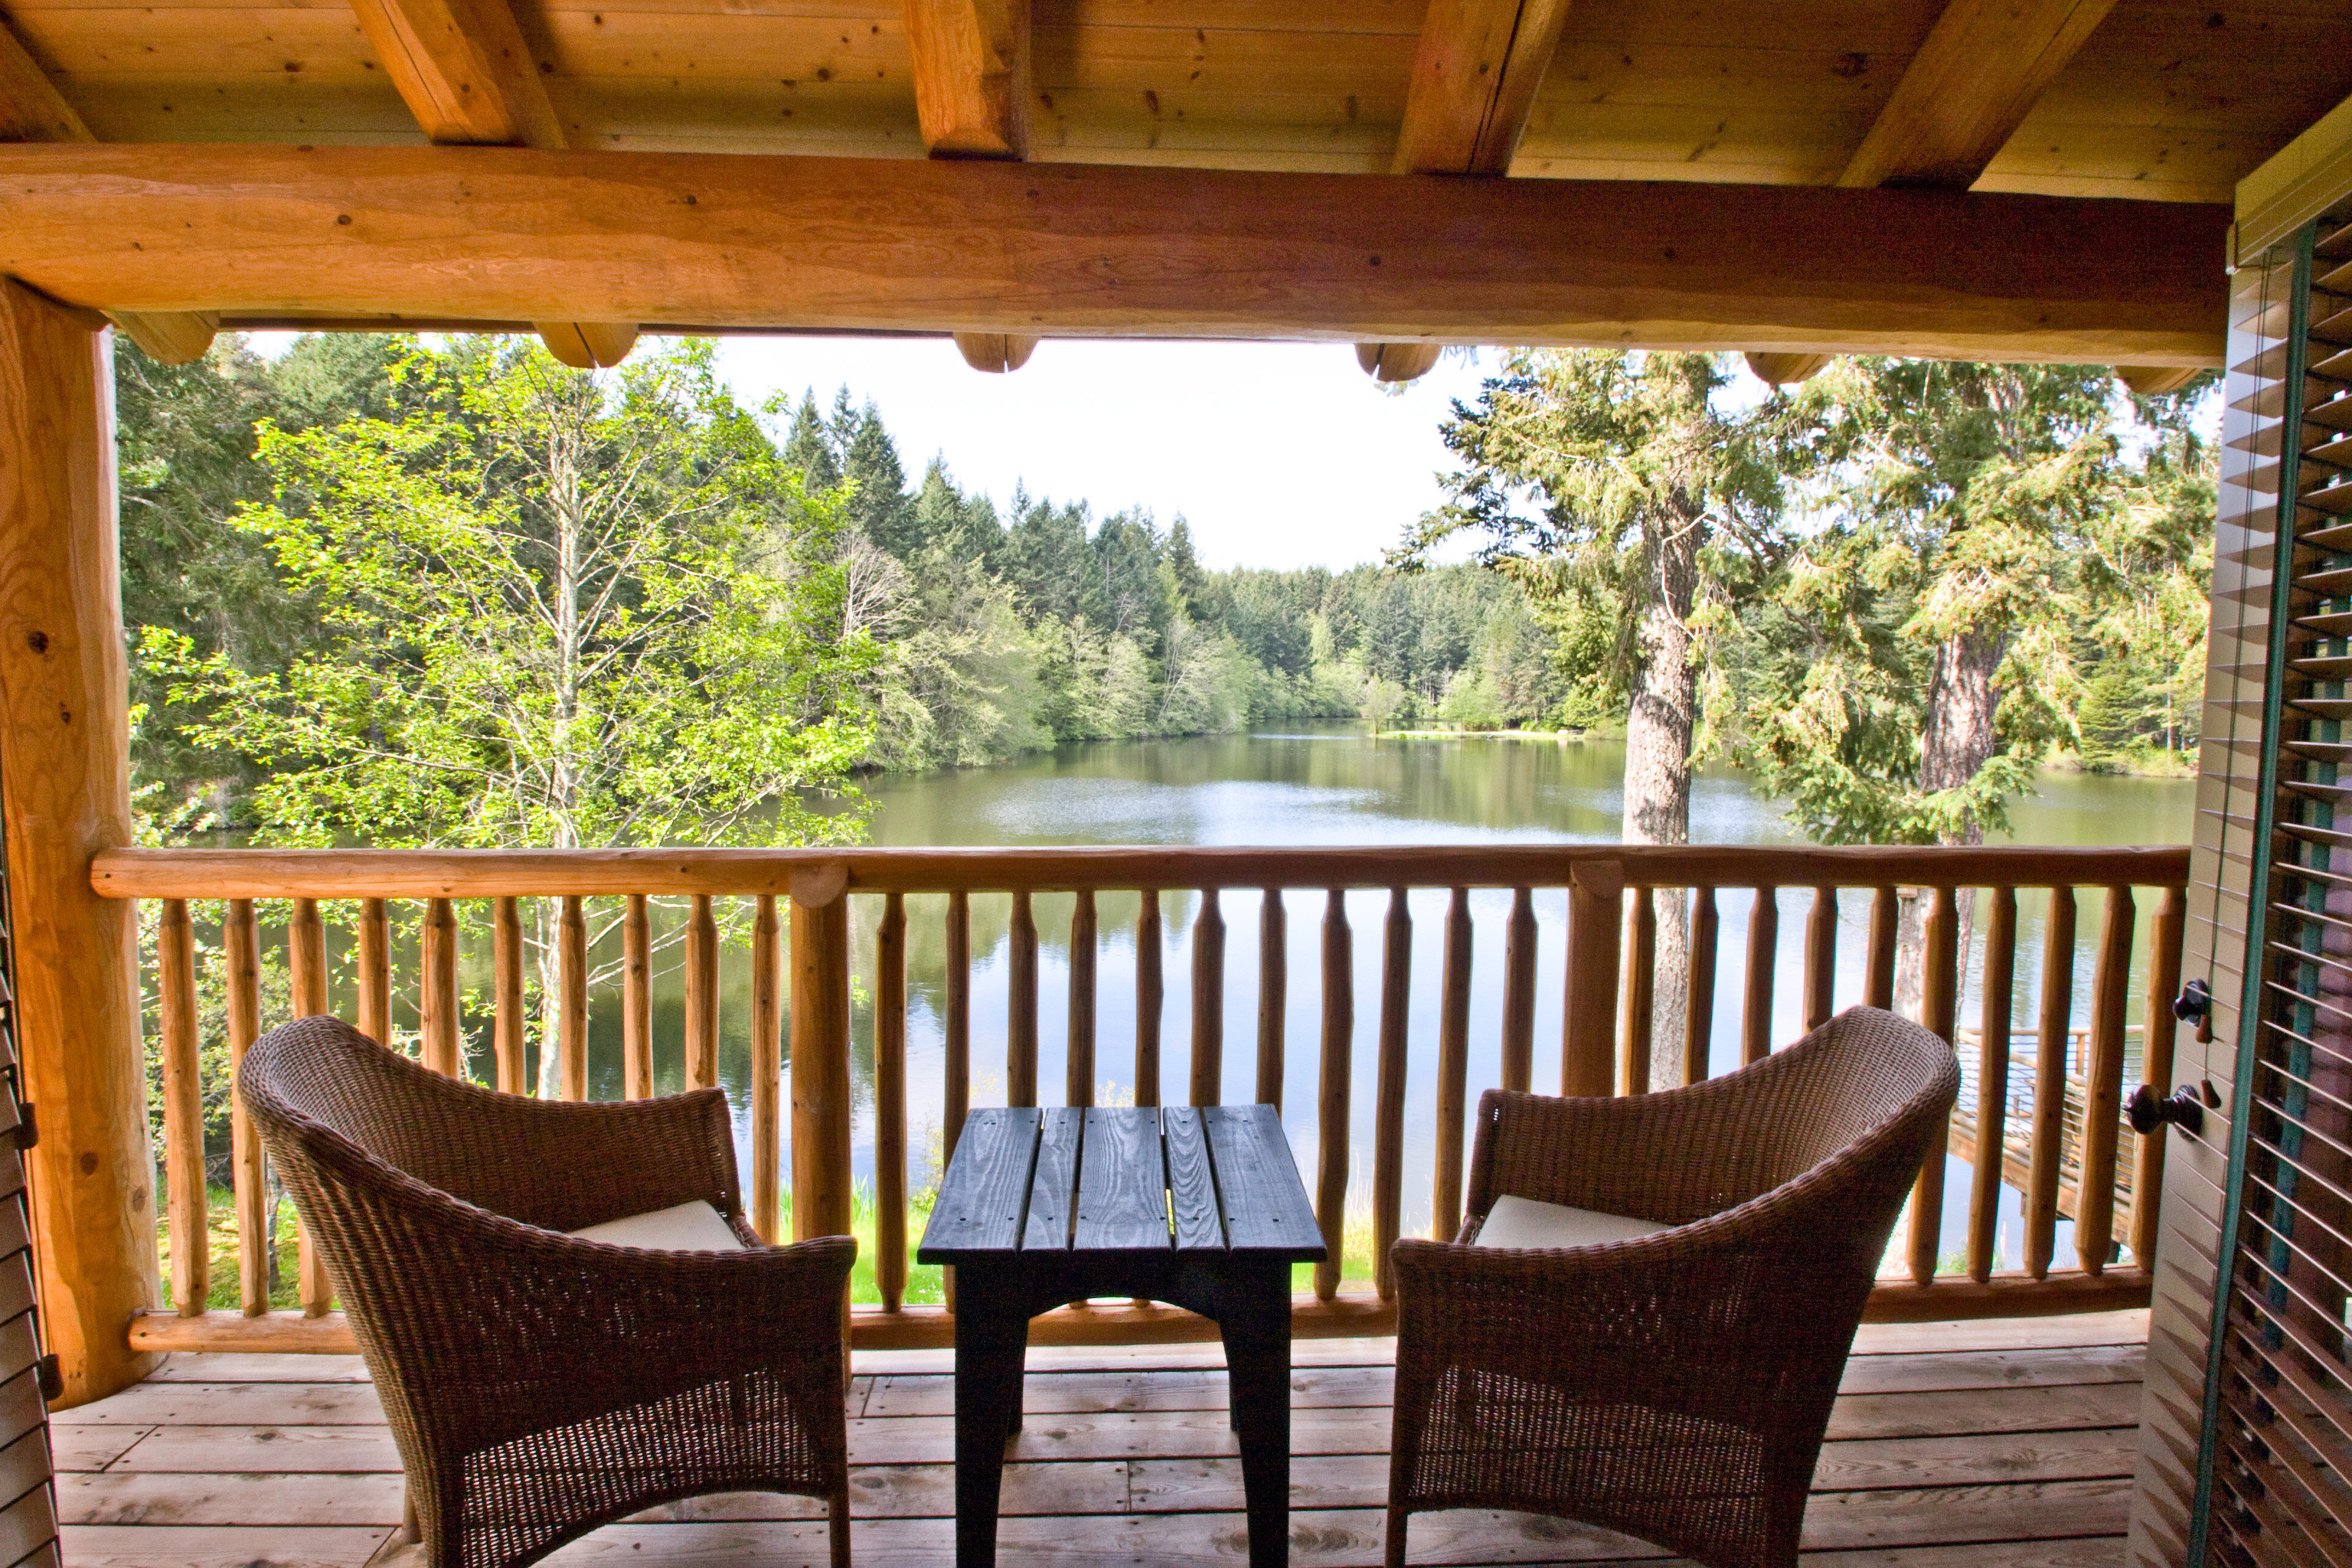 Balcony Lake Lodge Outdoors Patio Resort Rustic Scenic views chair building property porch living room house home cottage backyard outdoor structure Dining Villa farmhouse Deck dining table